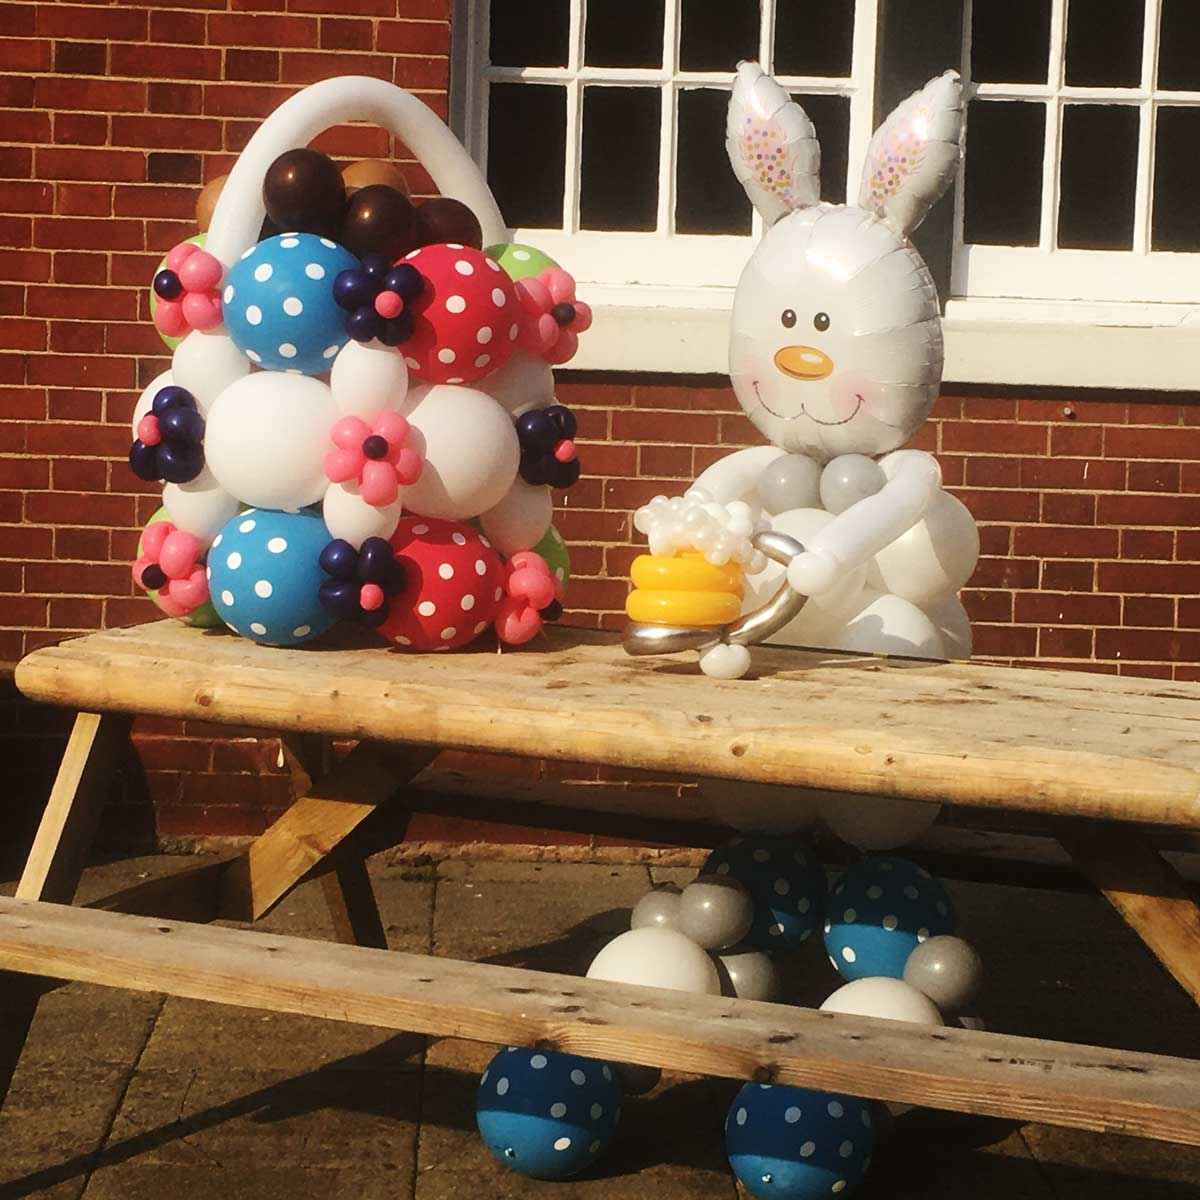 Easter bunny balloon creation